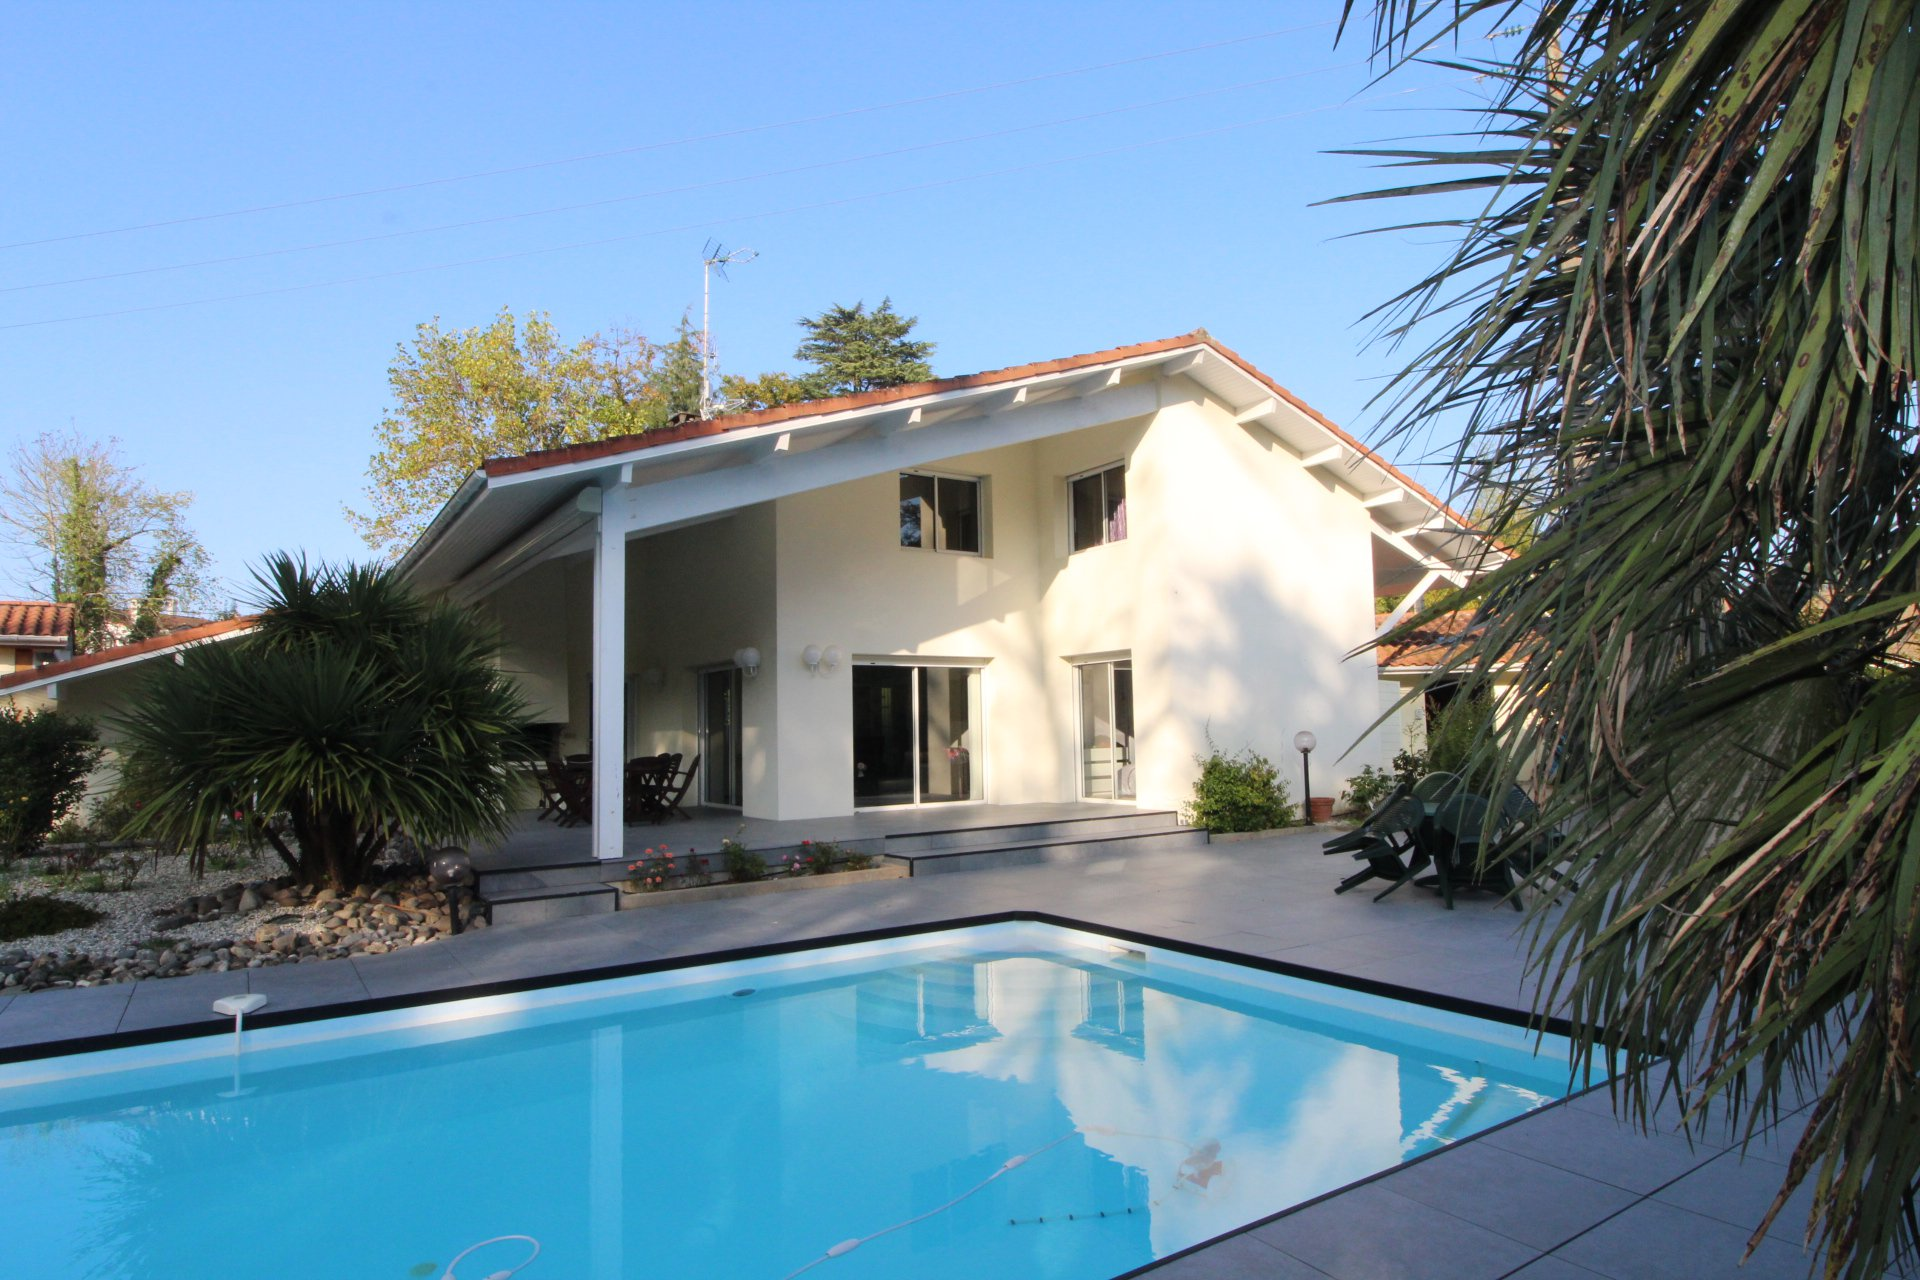 Attractive modern house with pool, close to commerce